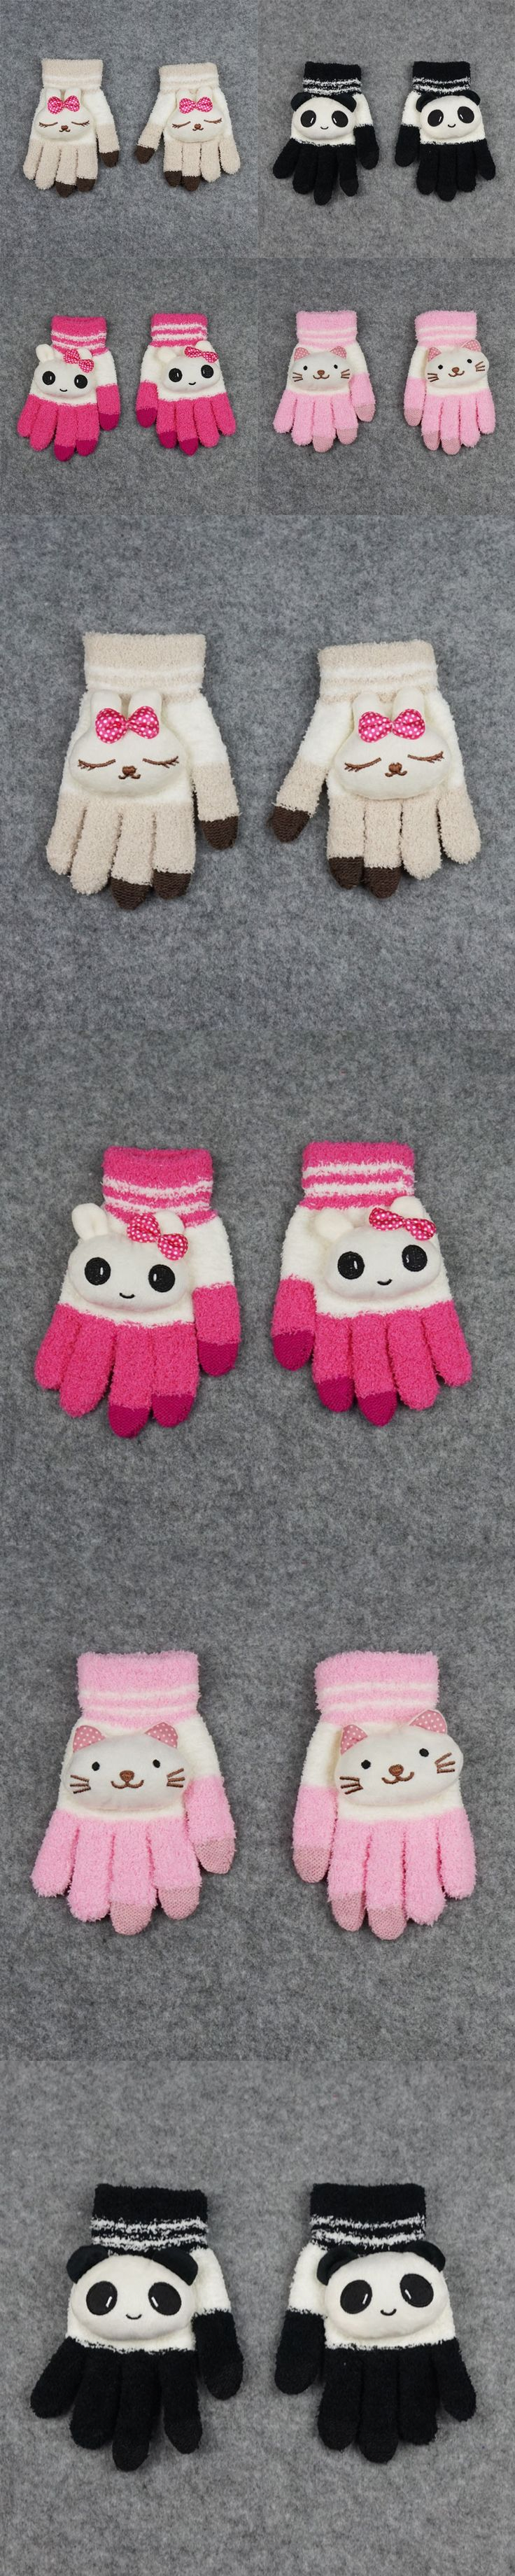 Warm Winter Fleece Children 's Cartoon Gloves Clothing Accessories Size Free 4 Color Practical